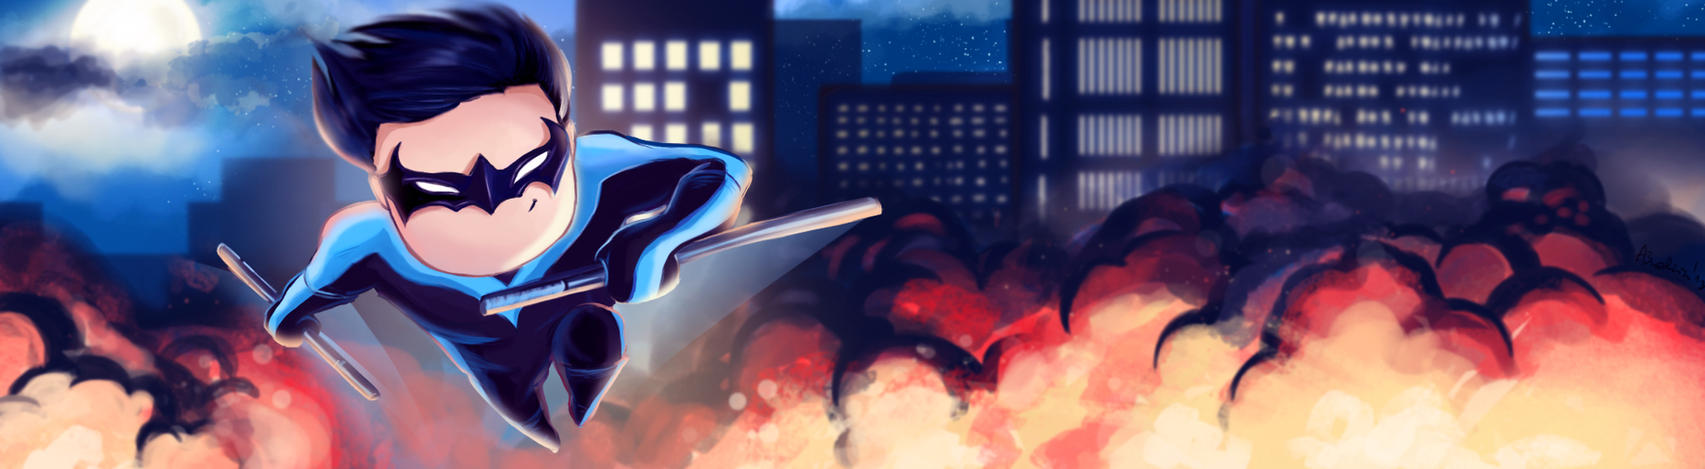 Nightwing by Ines92